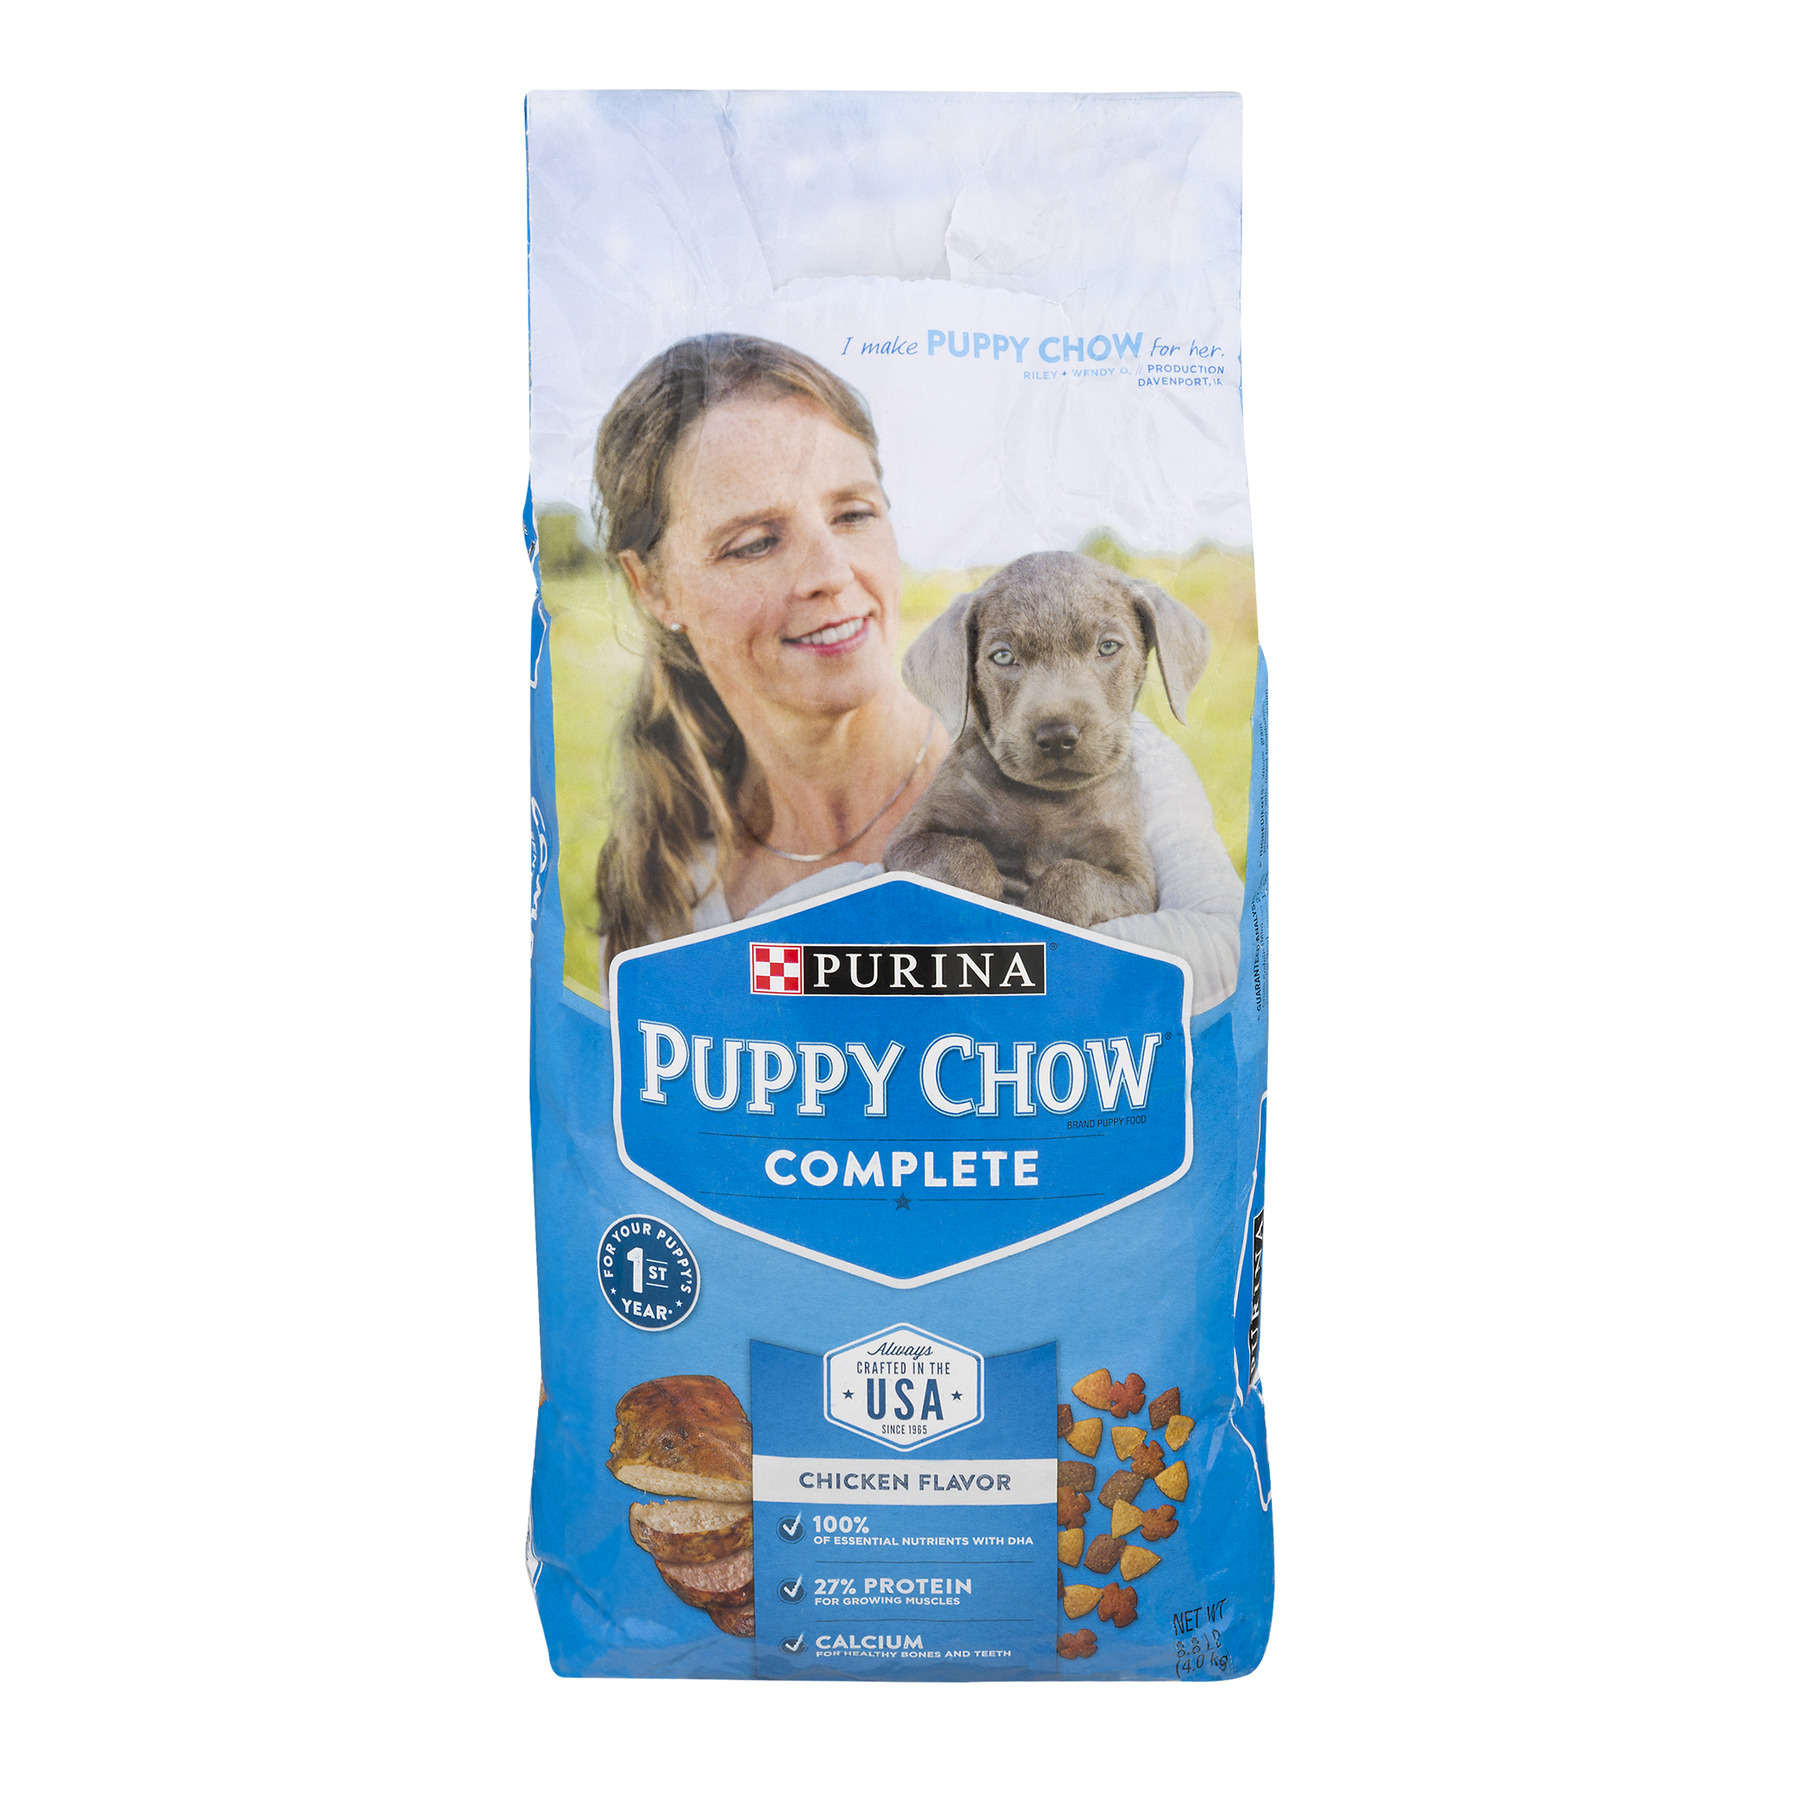 Purina Puppy Chow Chow Complete Puppy Dry Dog Food, 8 Lb